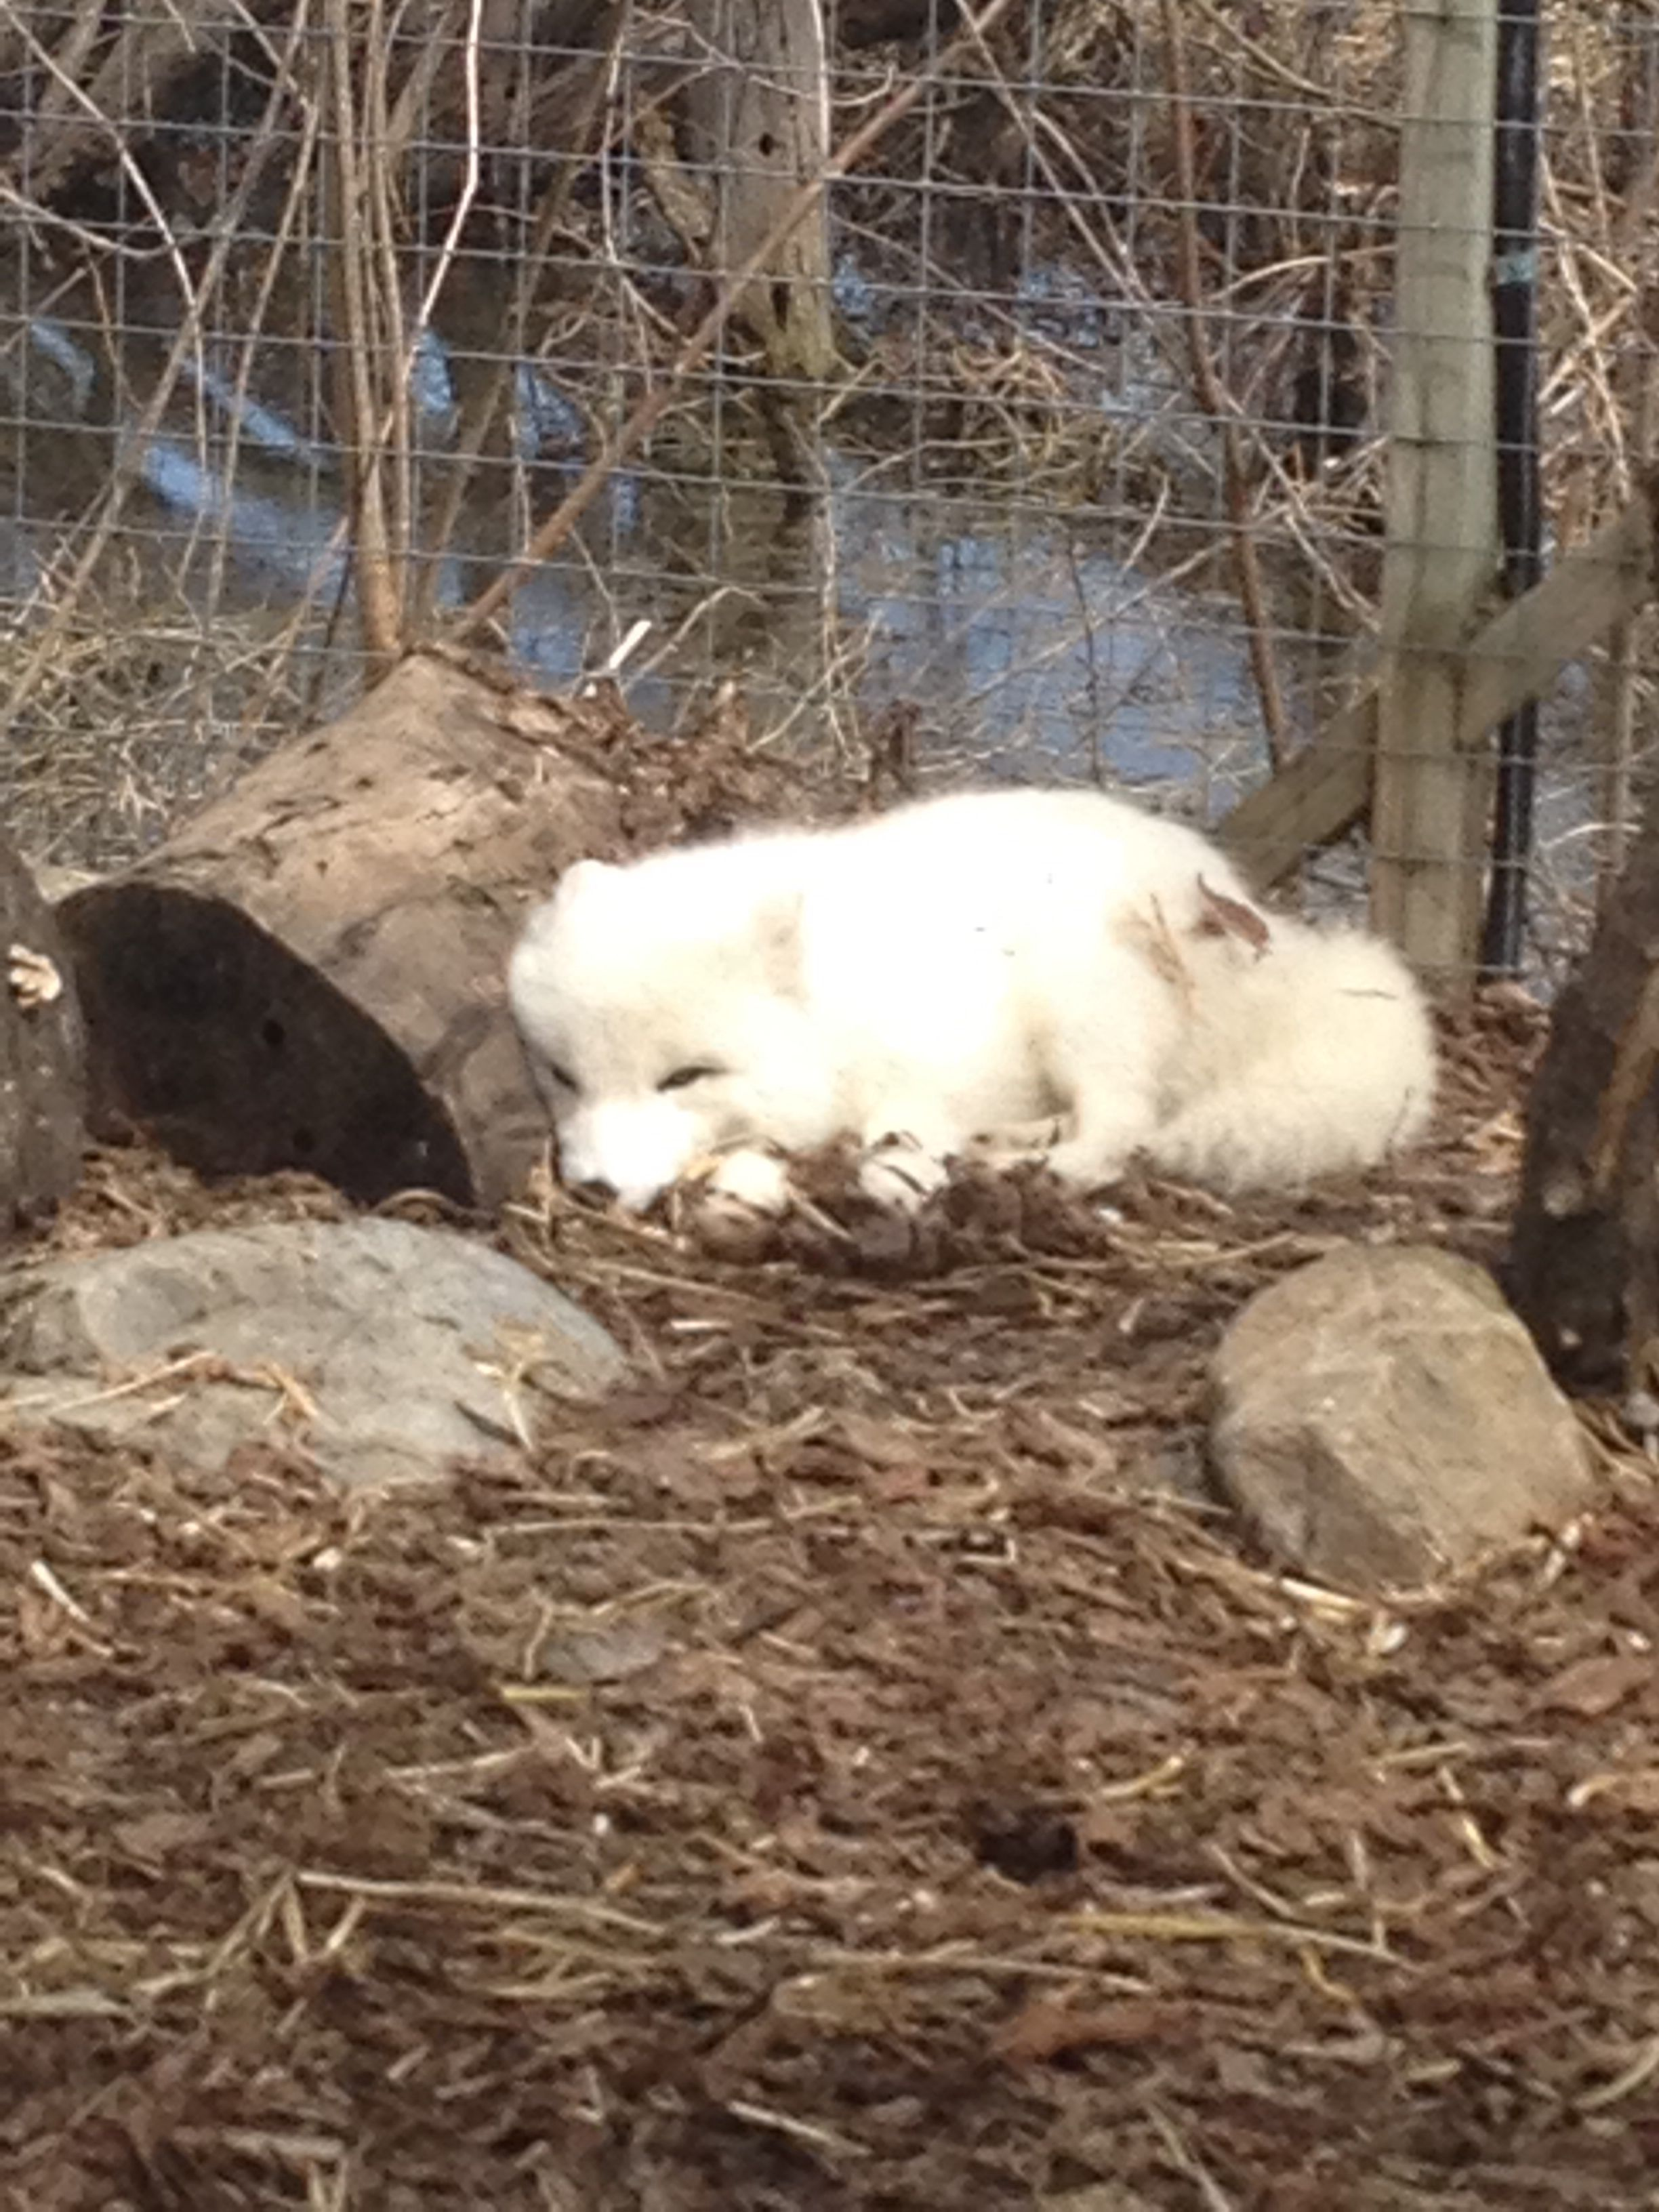 The artic fox sleeping